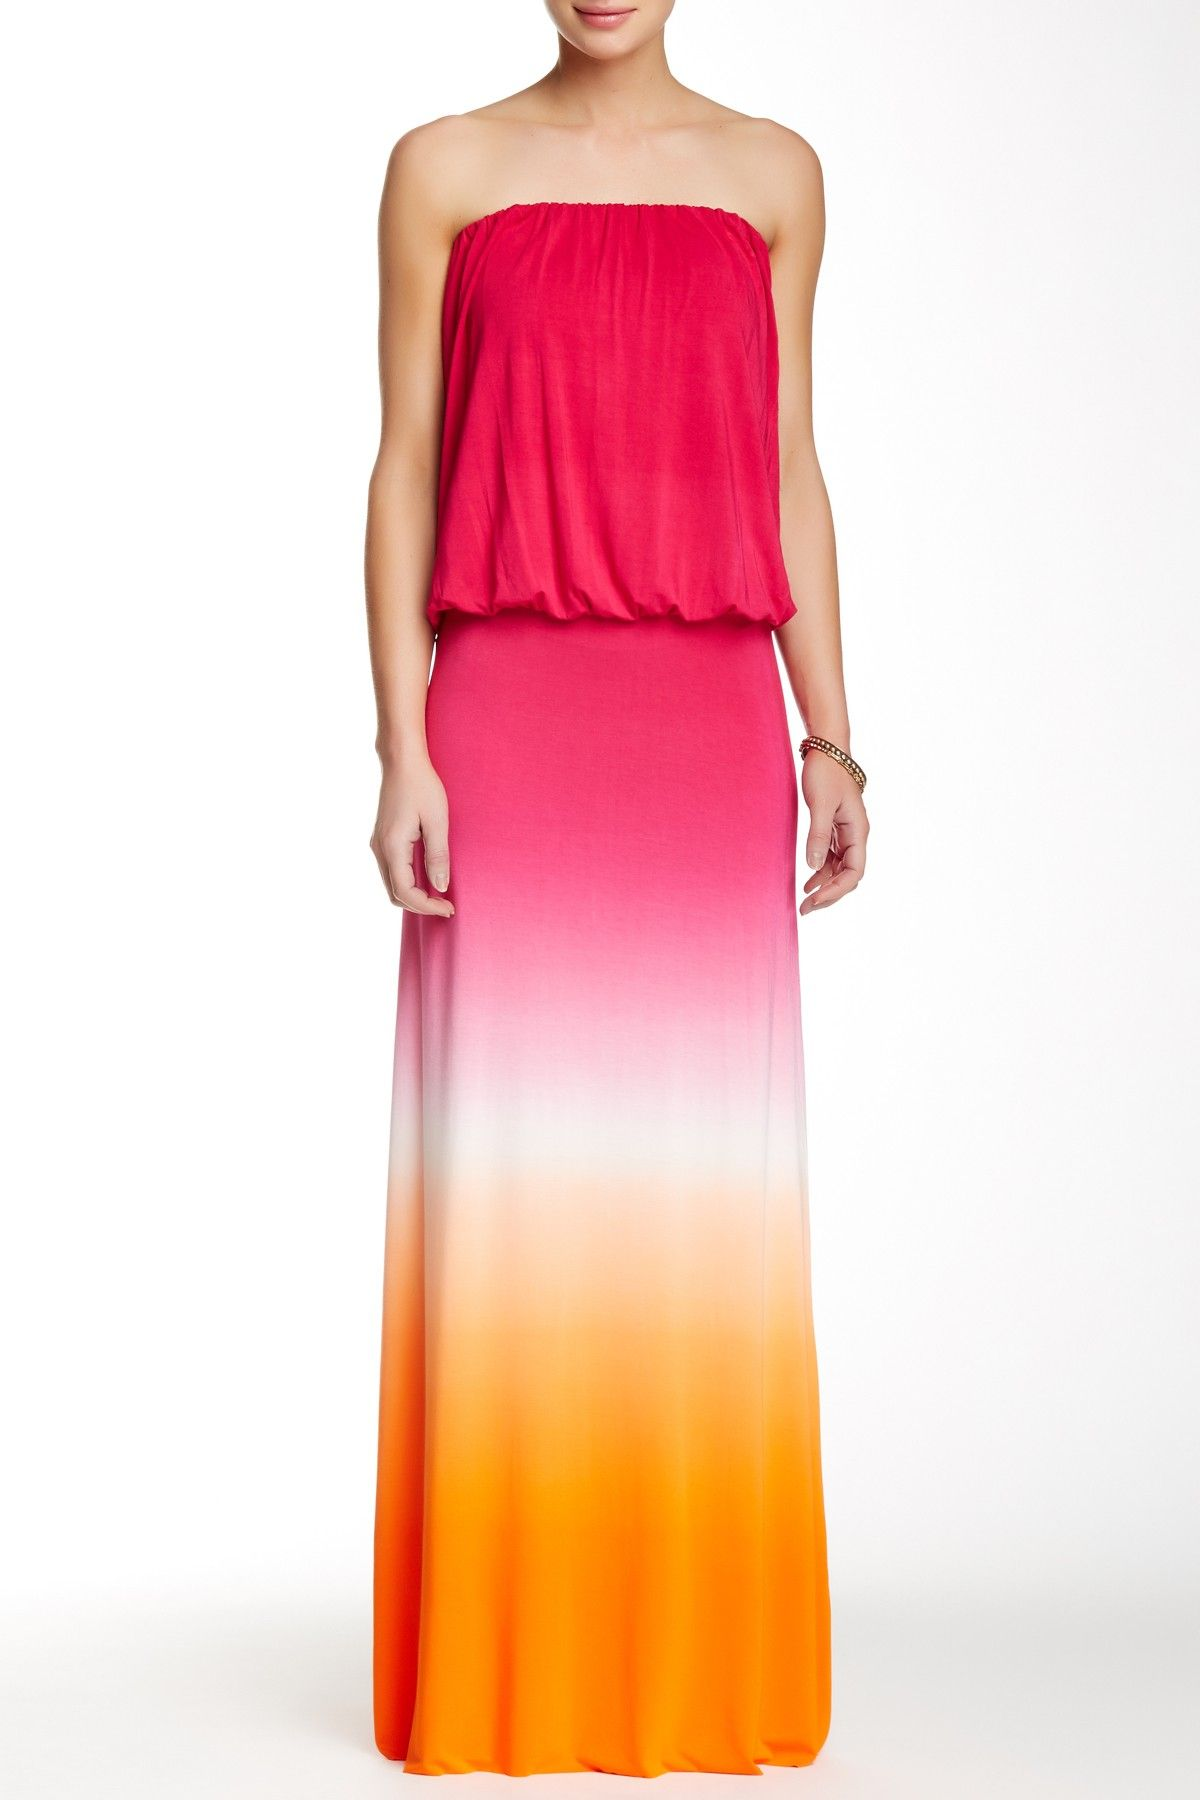 Sydney strapless maxi dress by young fabulous u broke on hautelook